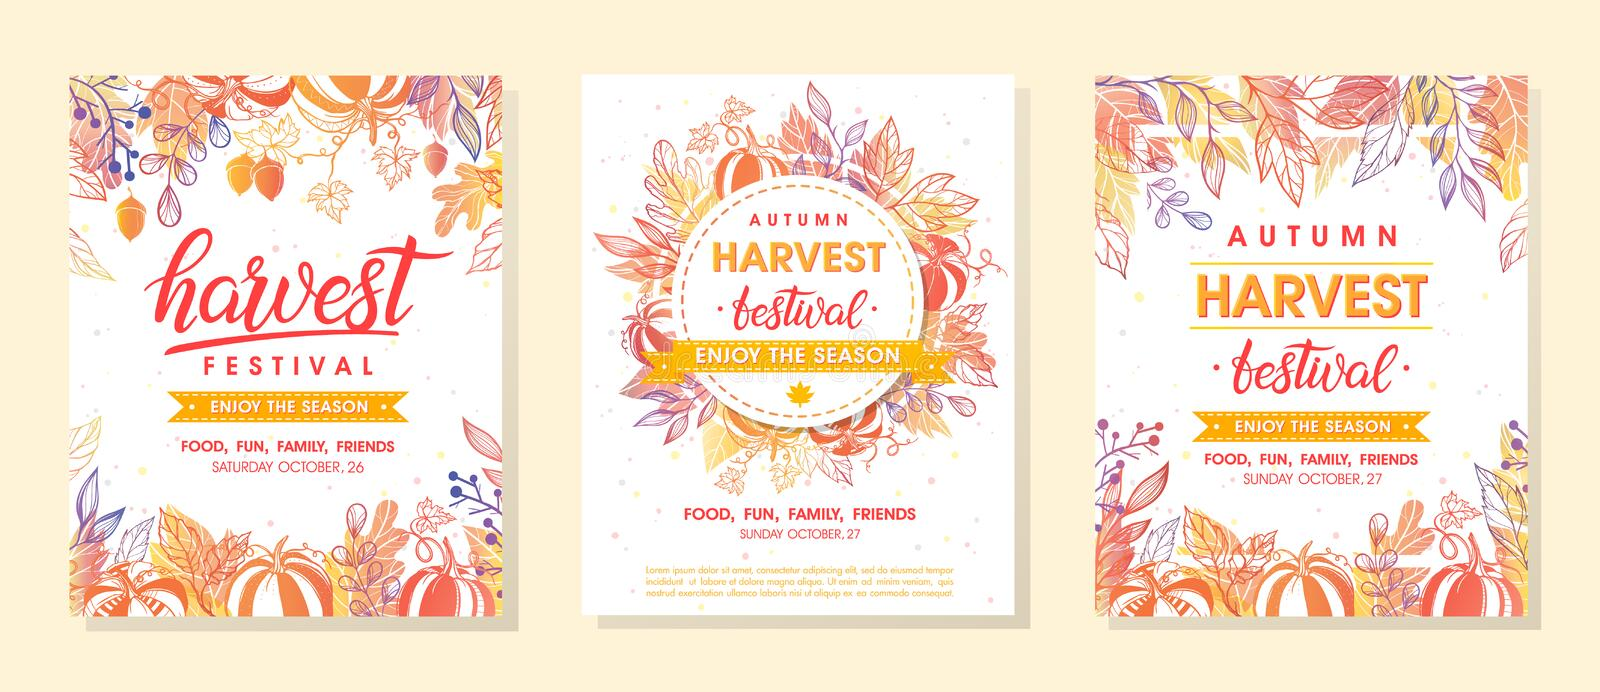 Bundle of autumn harvest festival banners with harvest symbols,leaves and floral element. Harvest fest design perfect for prints,flyers,banners,invitations and vector illustration